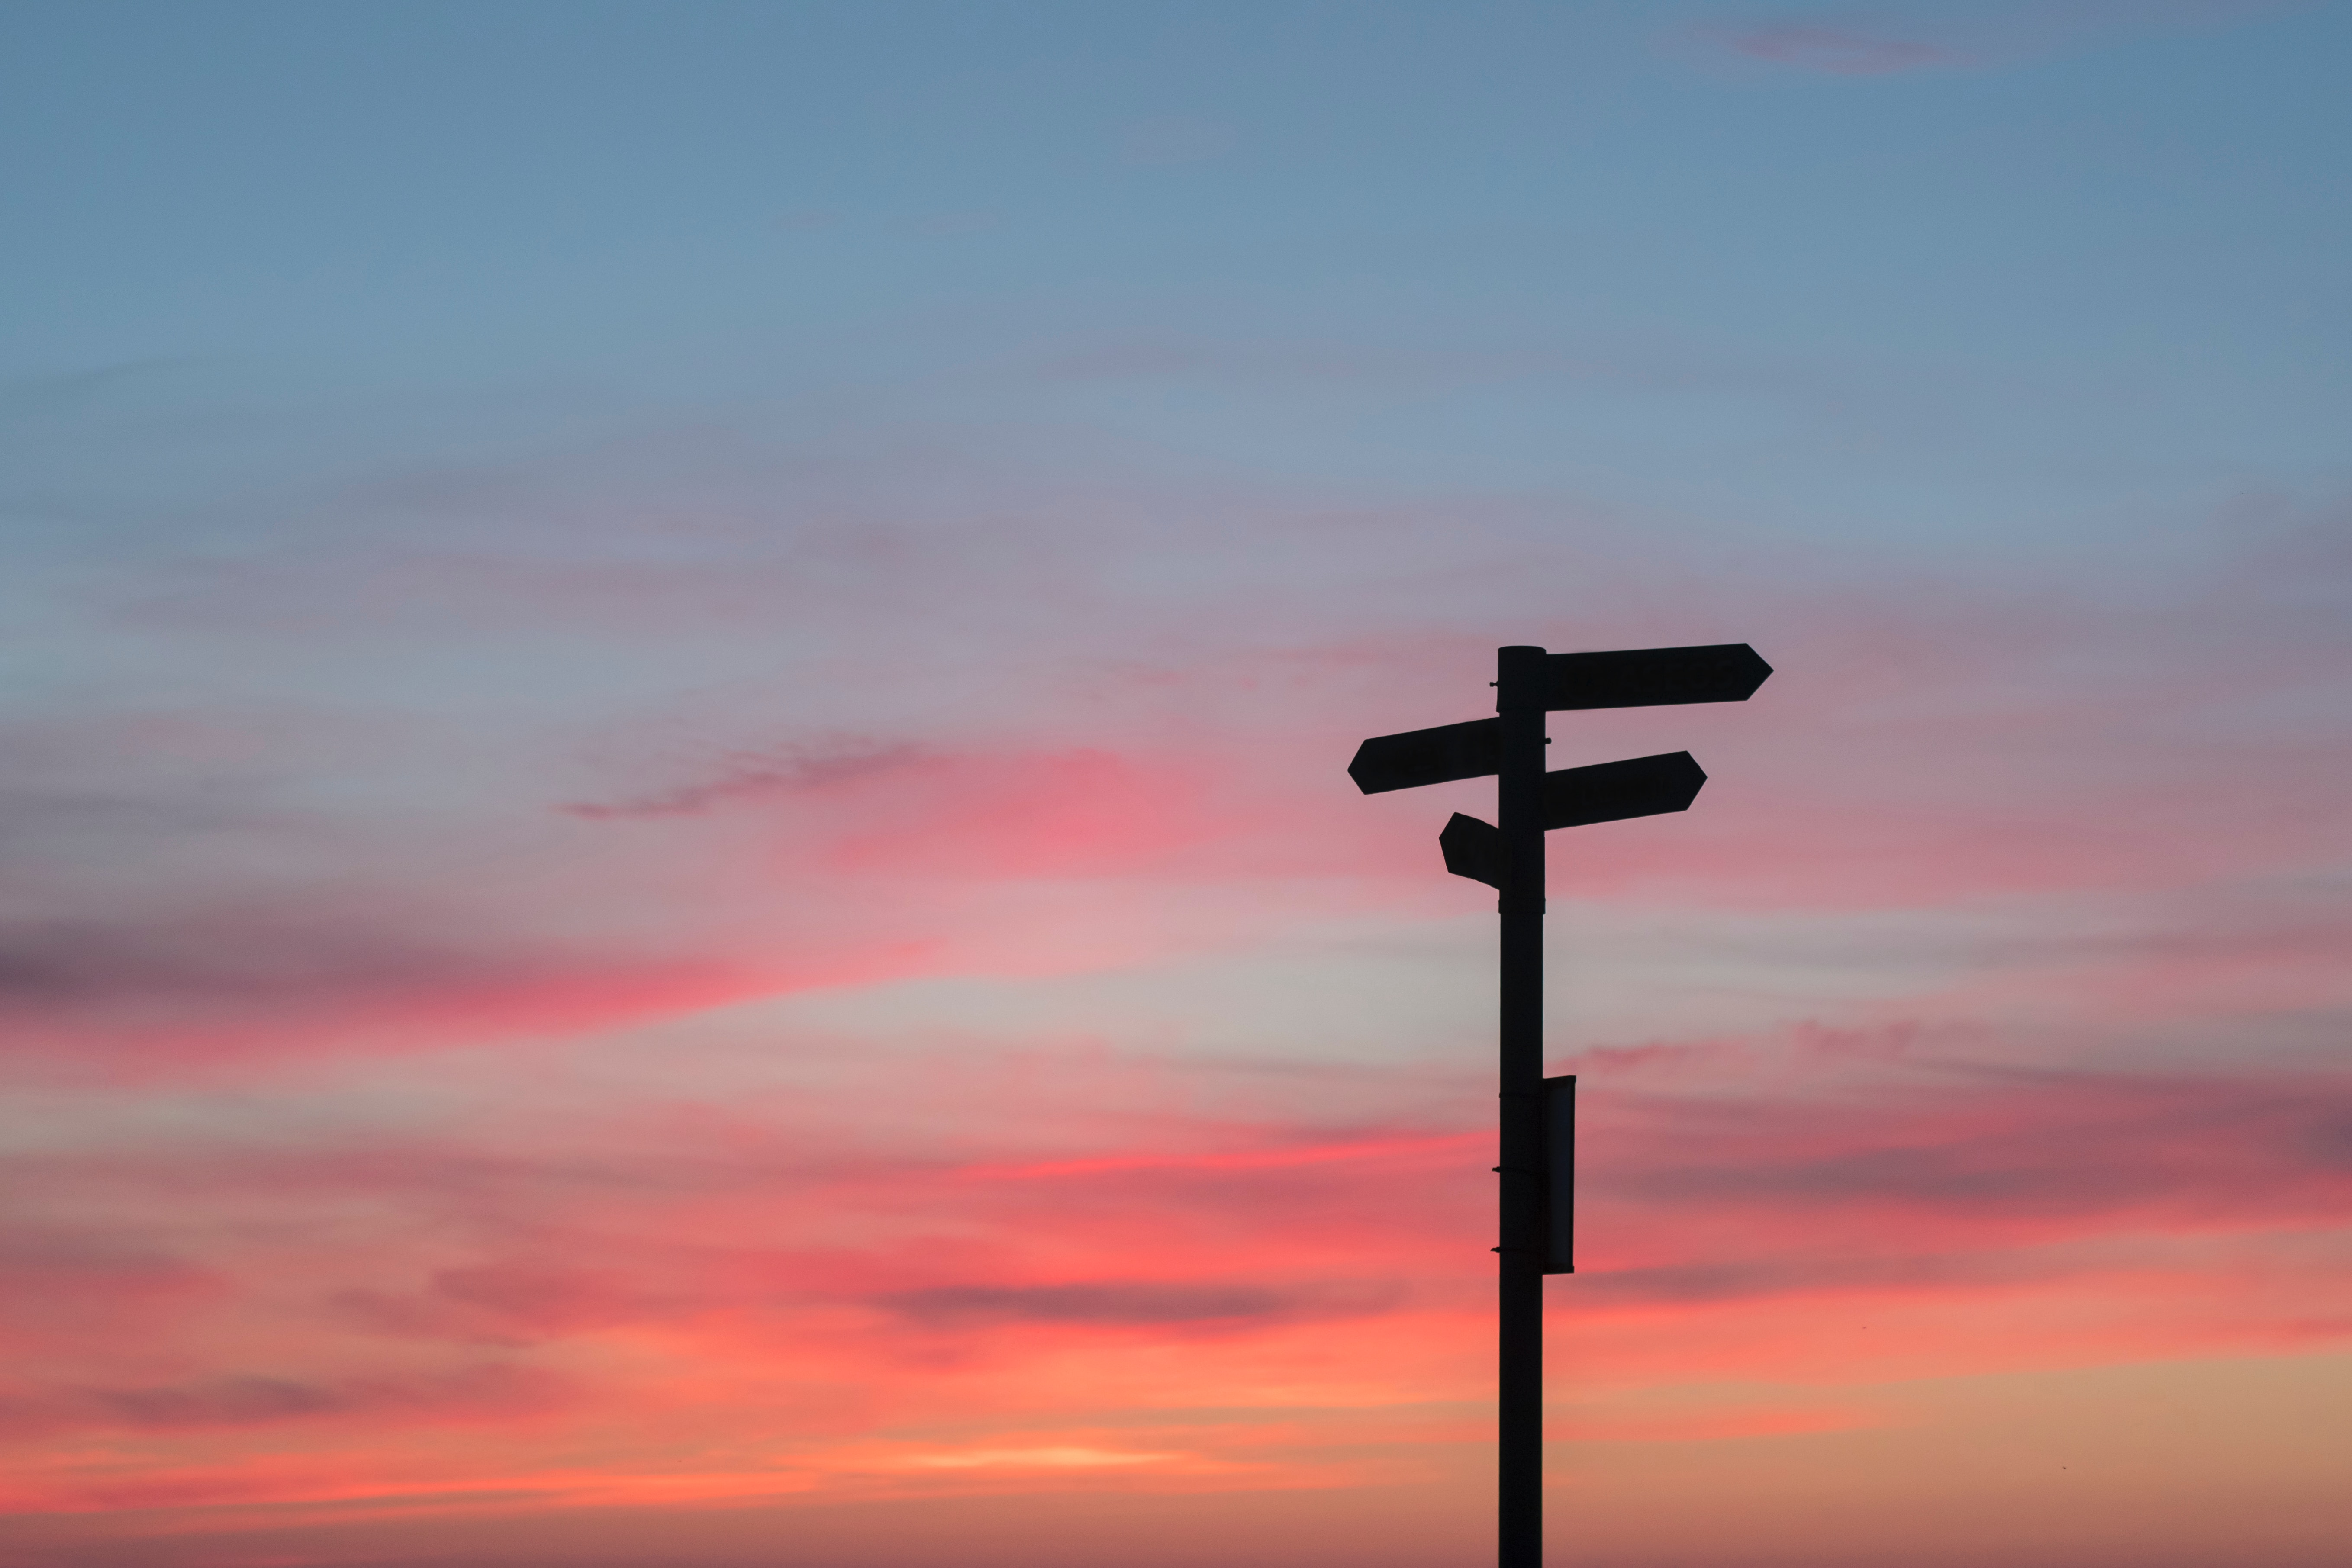 A signpost showing the way to SaaS Vendor Management Tips